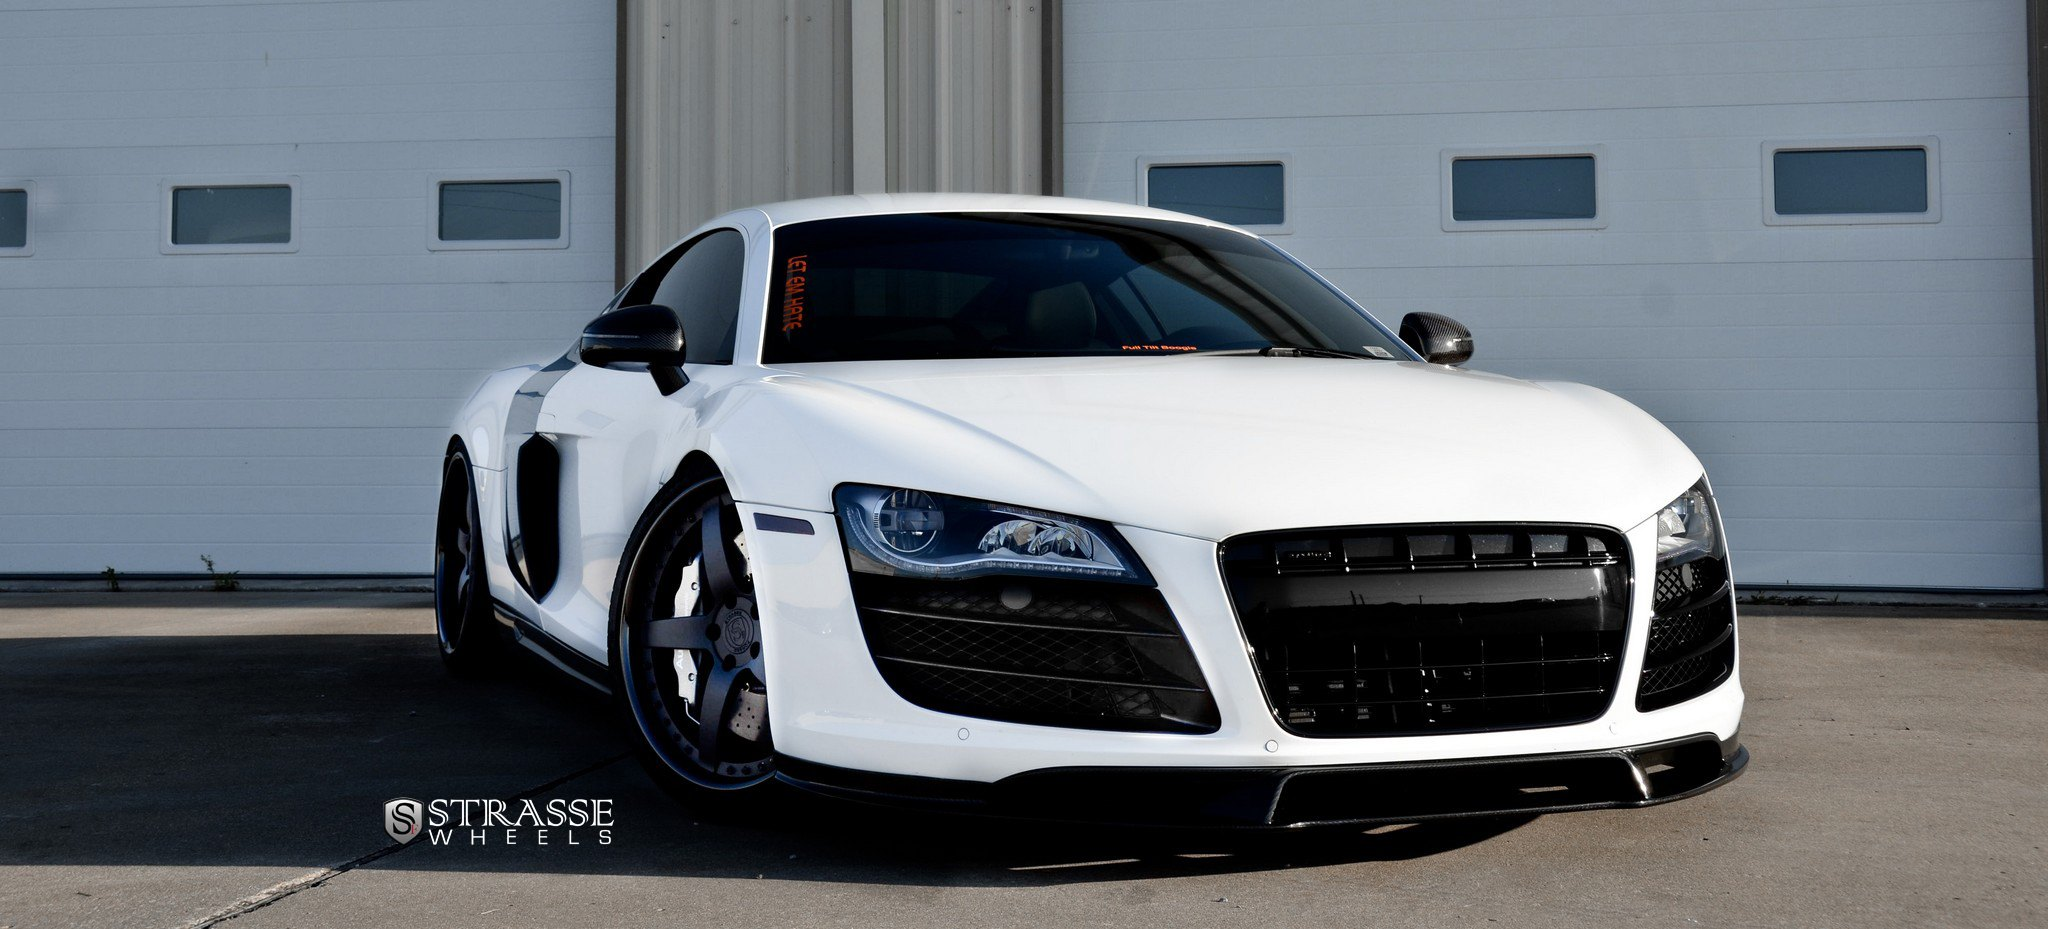 extremely stylish white audi r8 enhancedblacked out grille and